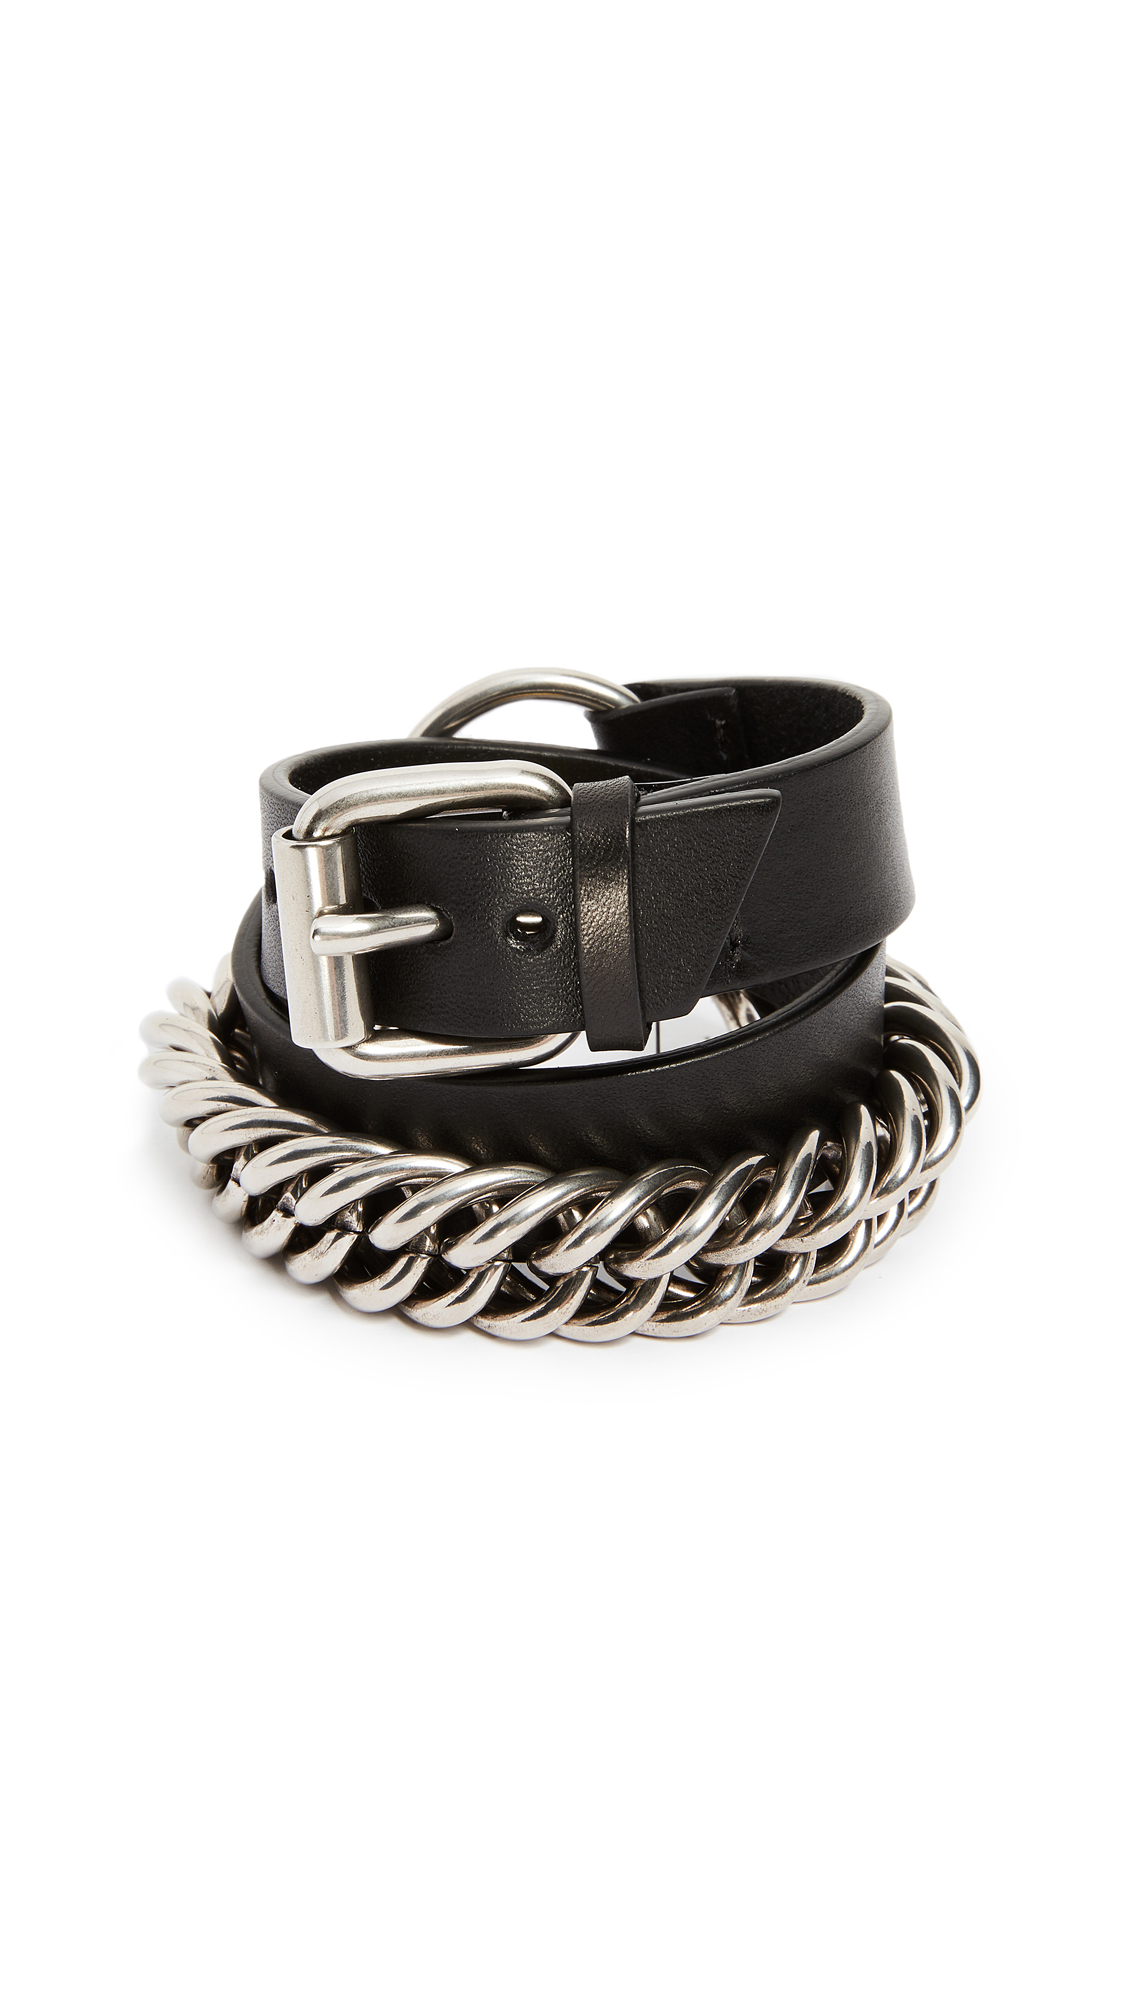 Alexander Wang Double Wrap Leather and Chain Bracelet - Black/Silver